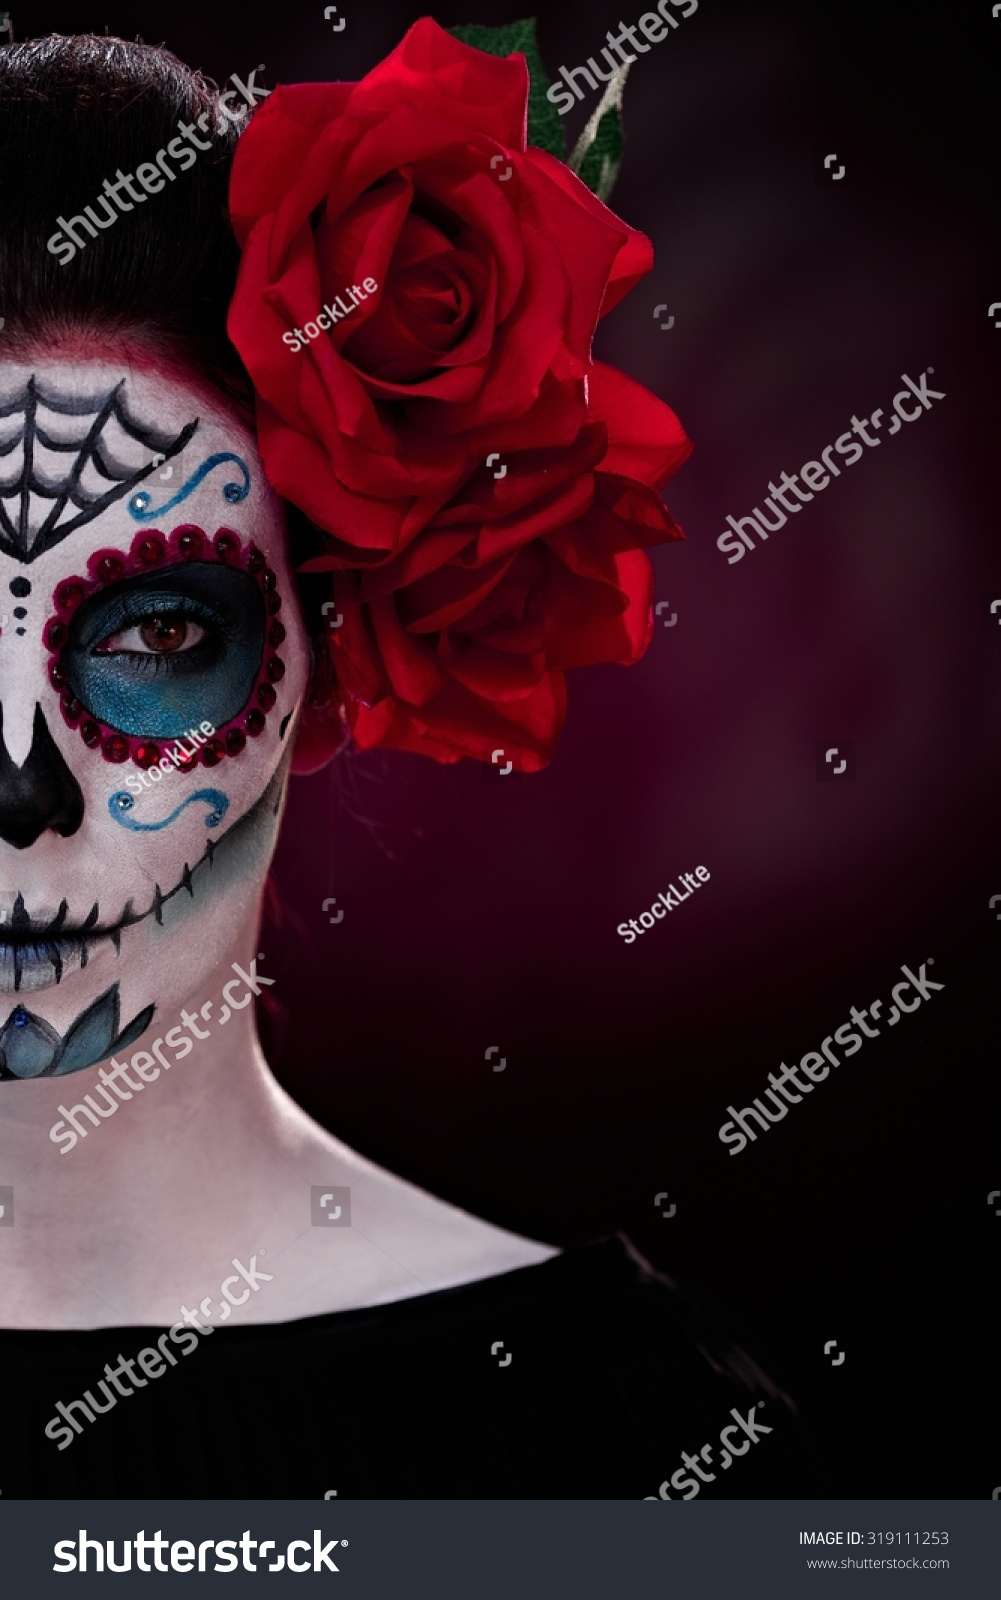 Professional Halloween Makeup Dallas: Half Portrait Woman Professional Makeup Halloween Stock